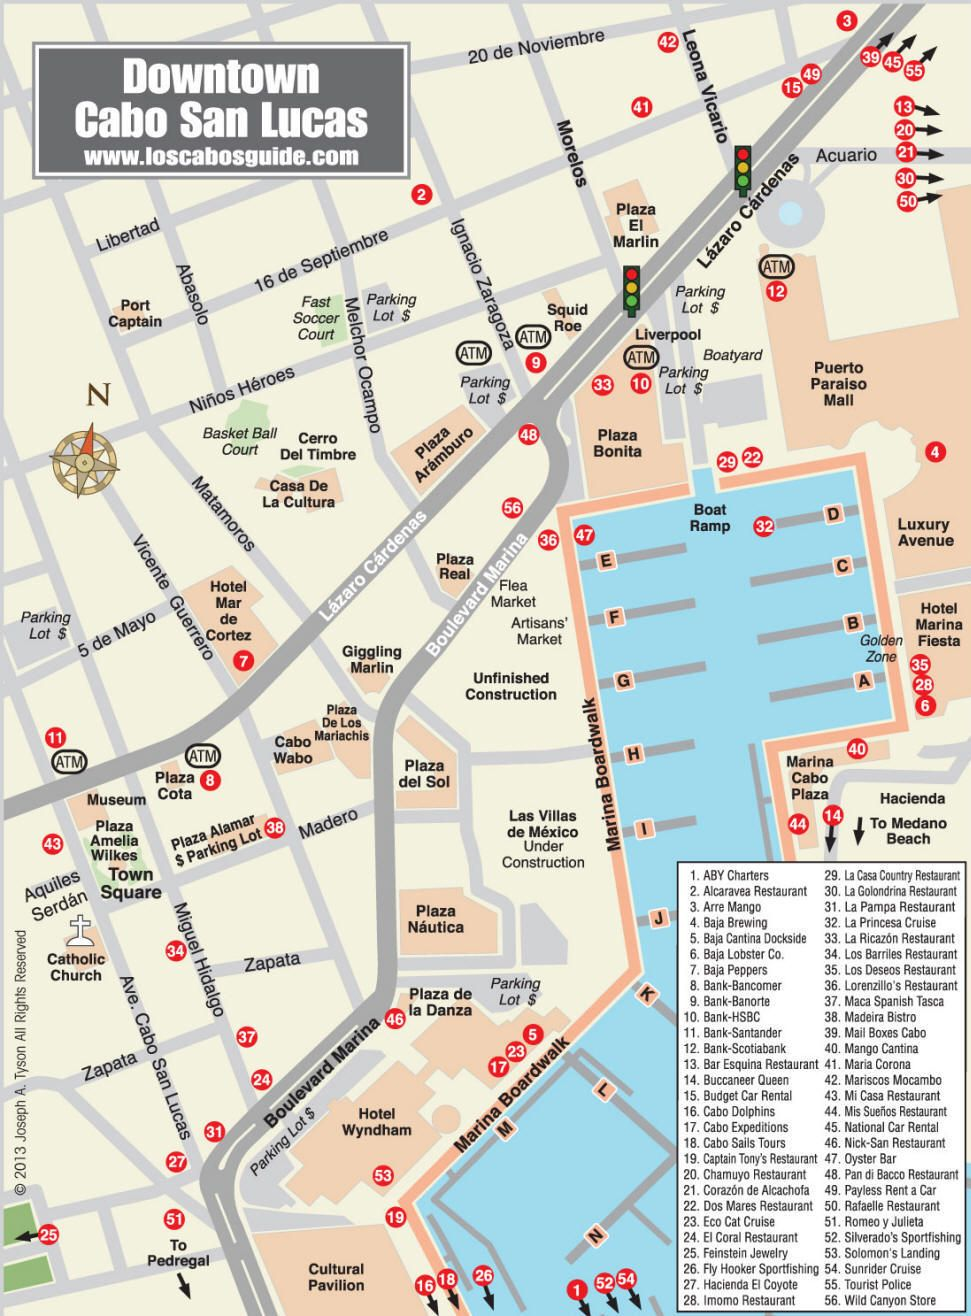 San Jose Del Cabo Mexico Map.Downtown Cabo San Lucas Map Los Cabos Guide Vacation Pinterest